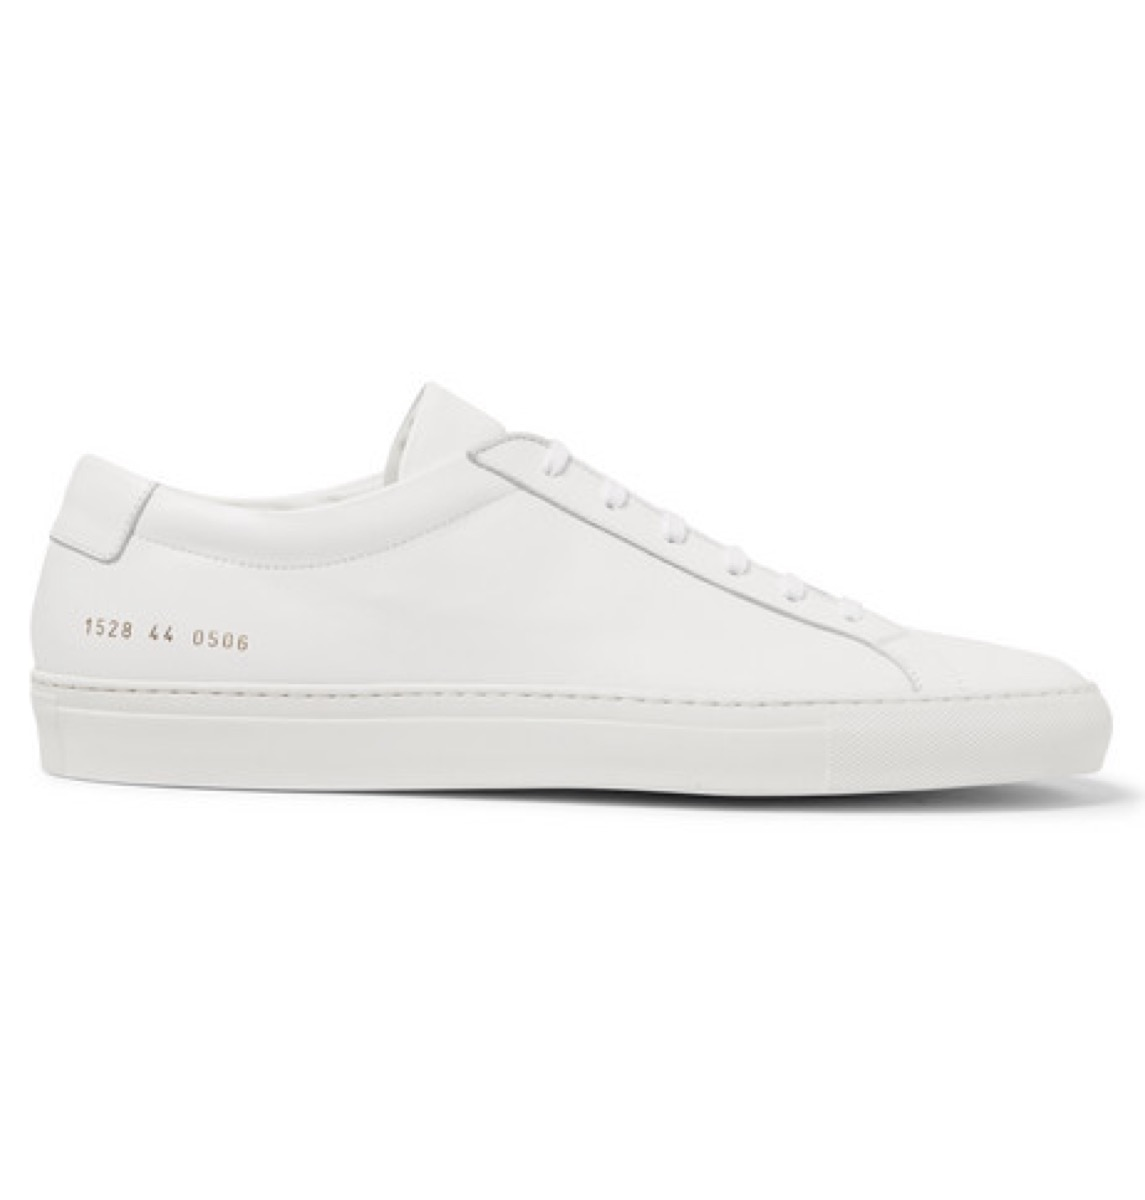 common projects original achilles leather sneakers mr porter, best boyfriend gifts